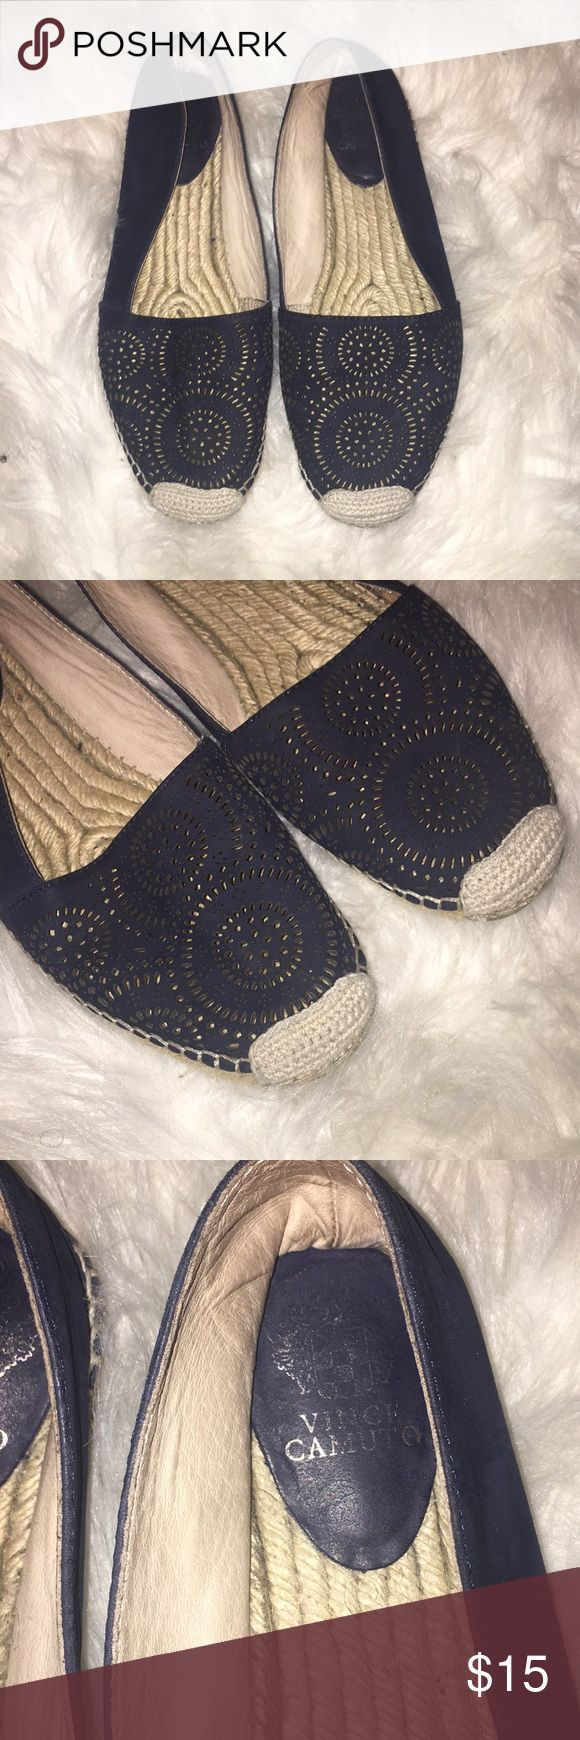 Vince Camuto navy espadrilles Vince Camuto navy with cutout design espadrilles perfect for the summer. Only look worn on the bottom of the shoe. Vince Camuto Shoes Espadrilles